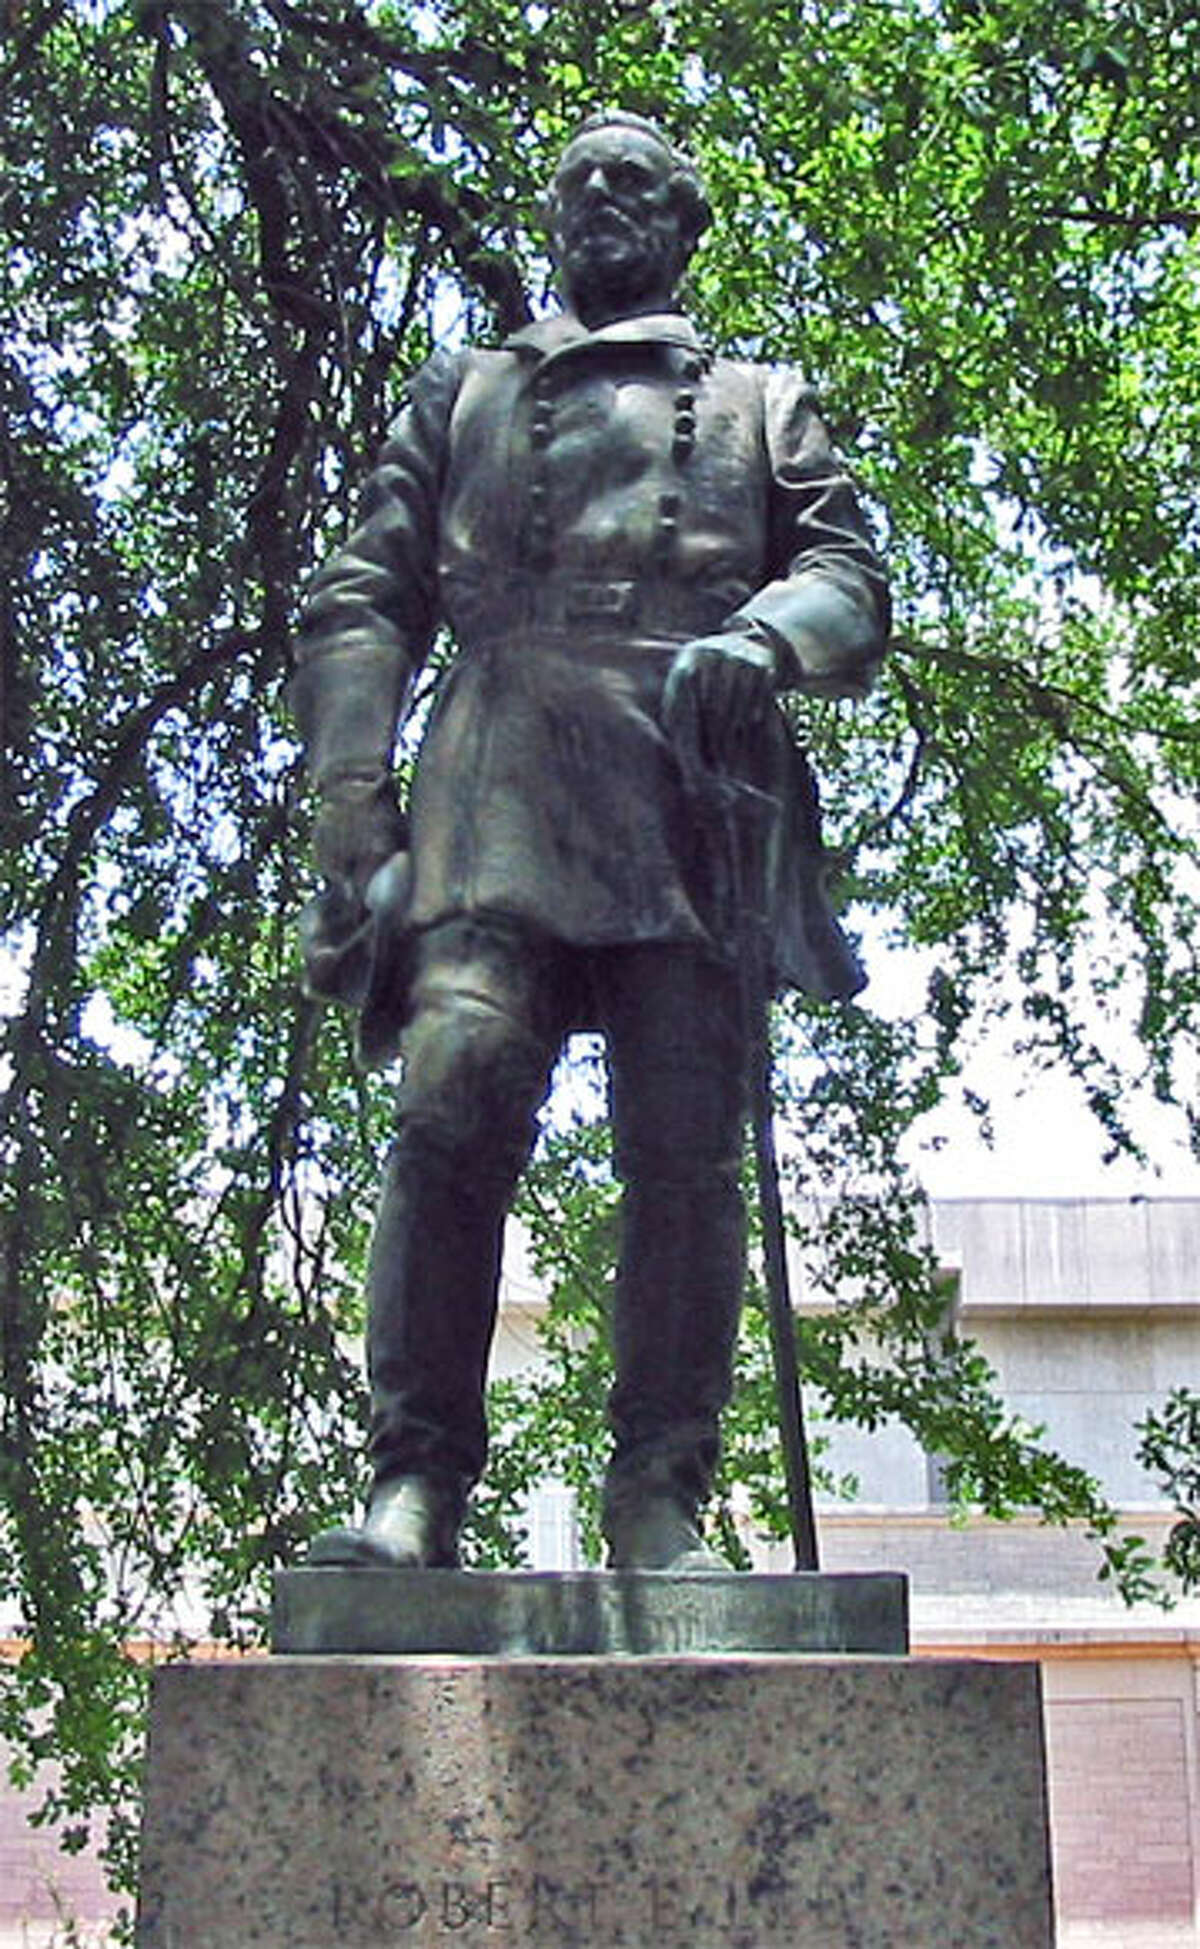 Statue of Robert E. Lee on the grounds of the University of Texas at Austin. Photograph by J. Williams. (July 12, 2003). >>Here is a list of Confederate monuments and statues that were removed in 2017...